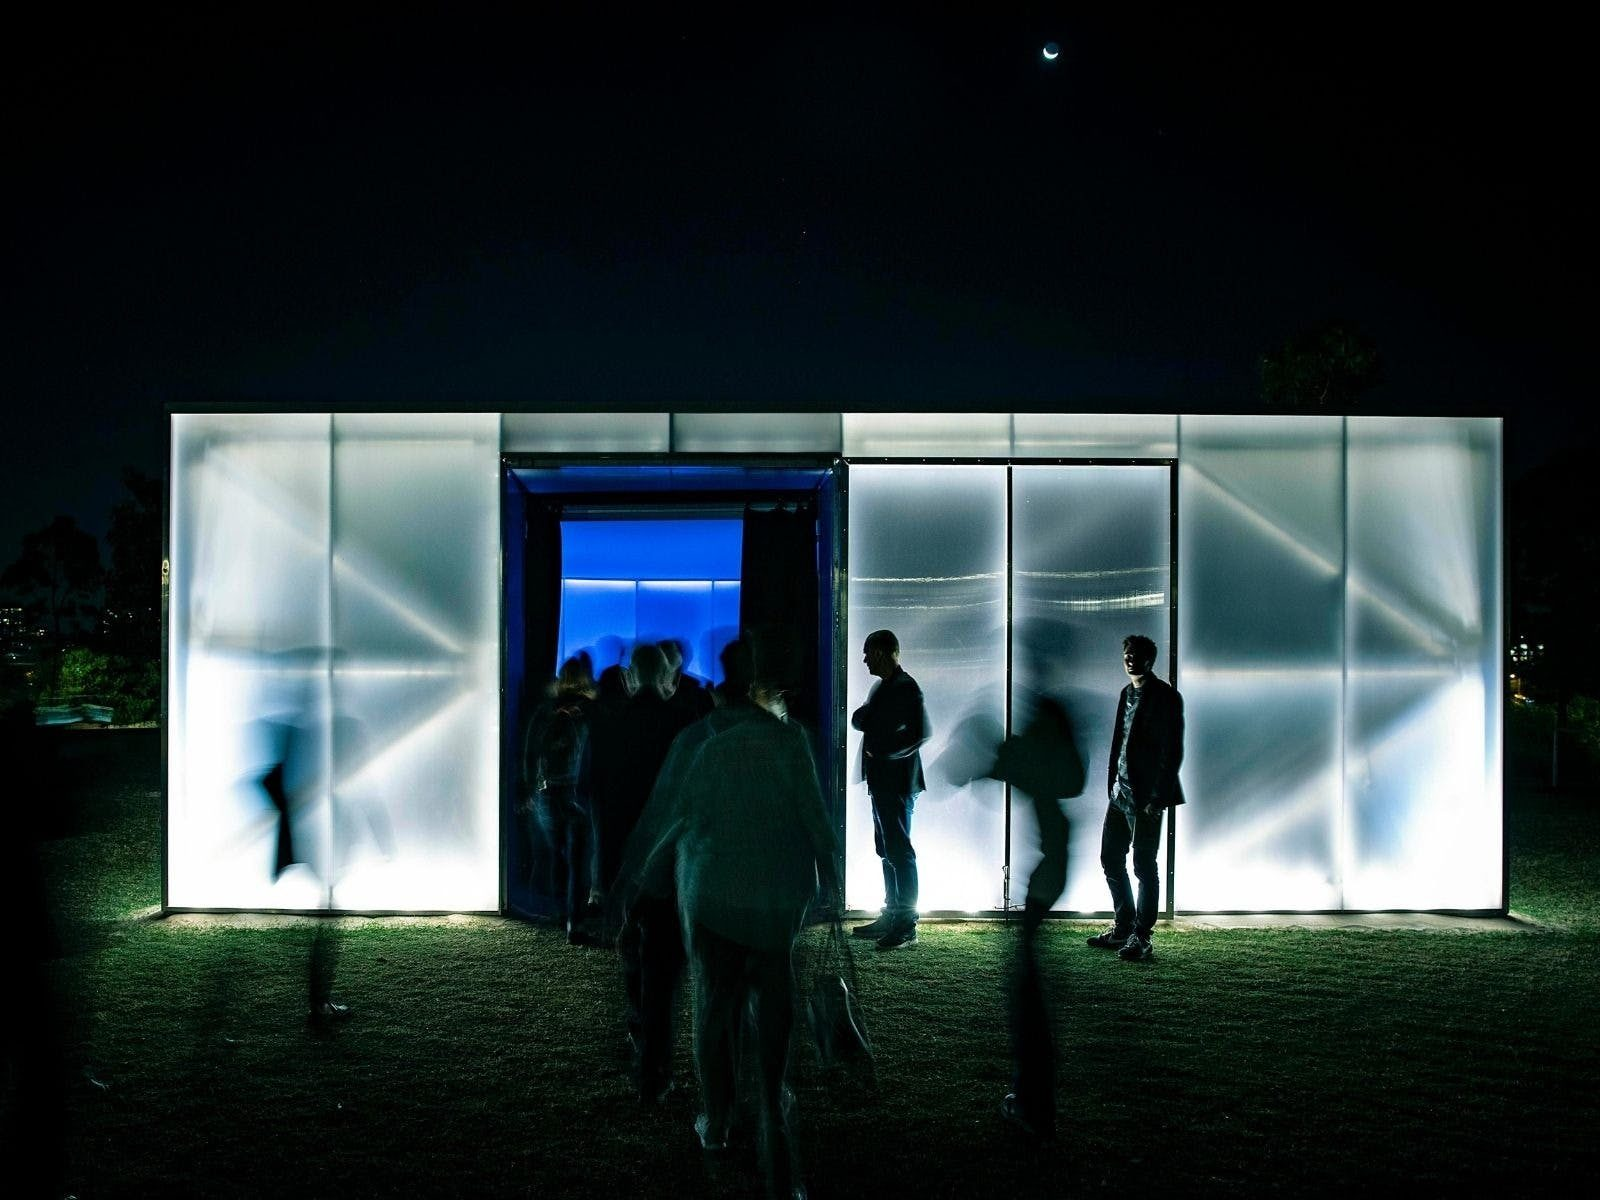 Shadowy people enter an illuminated box in a garden.